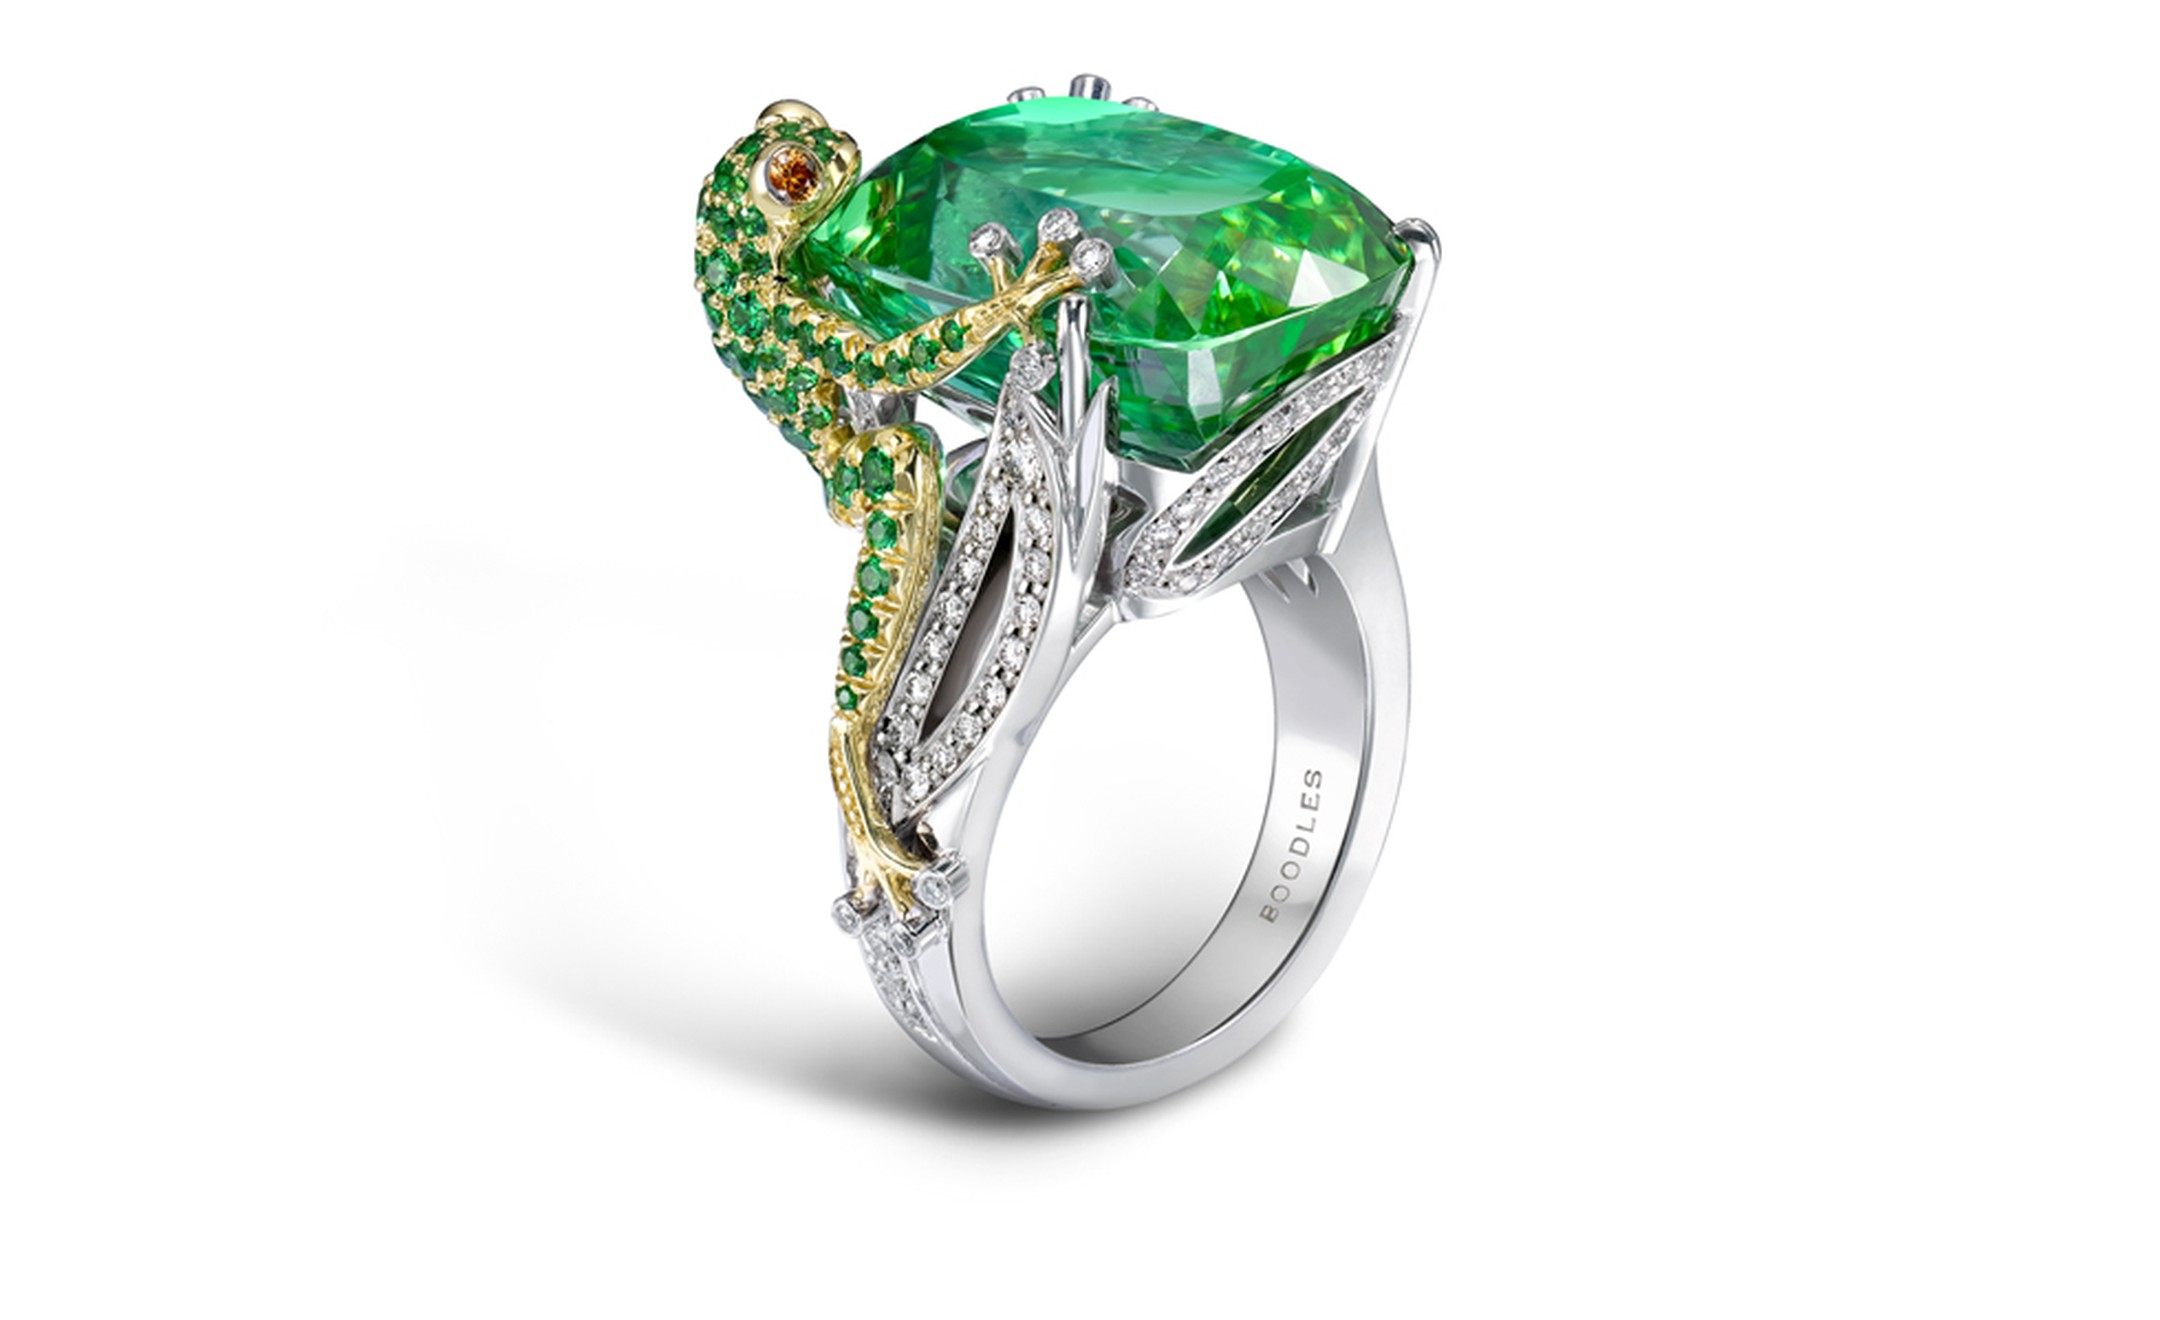 BOODLES, Green Frog. A green tourmaline frog design ring in platinum and 18ct yellow gold.  The centre stone is over 20cts.  His little body is made up of tourmaline stones. £36,200